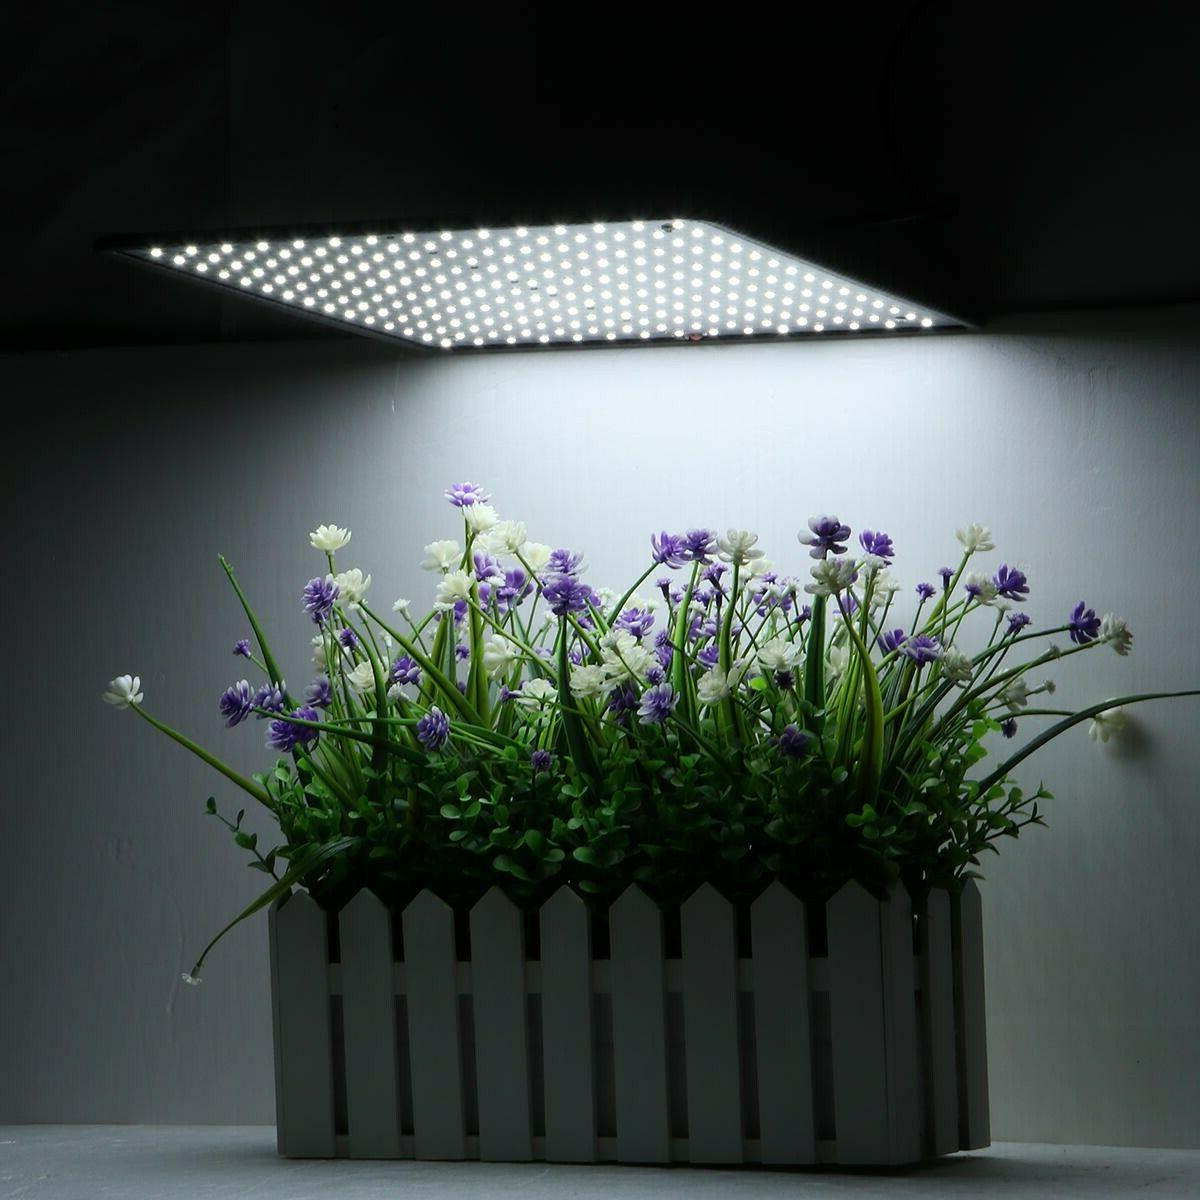 225LED Grow Light White Lamp Ultrathin Panel Hydroponics Ind